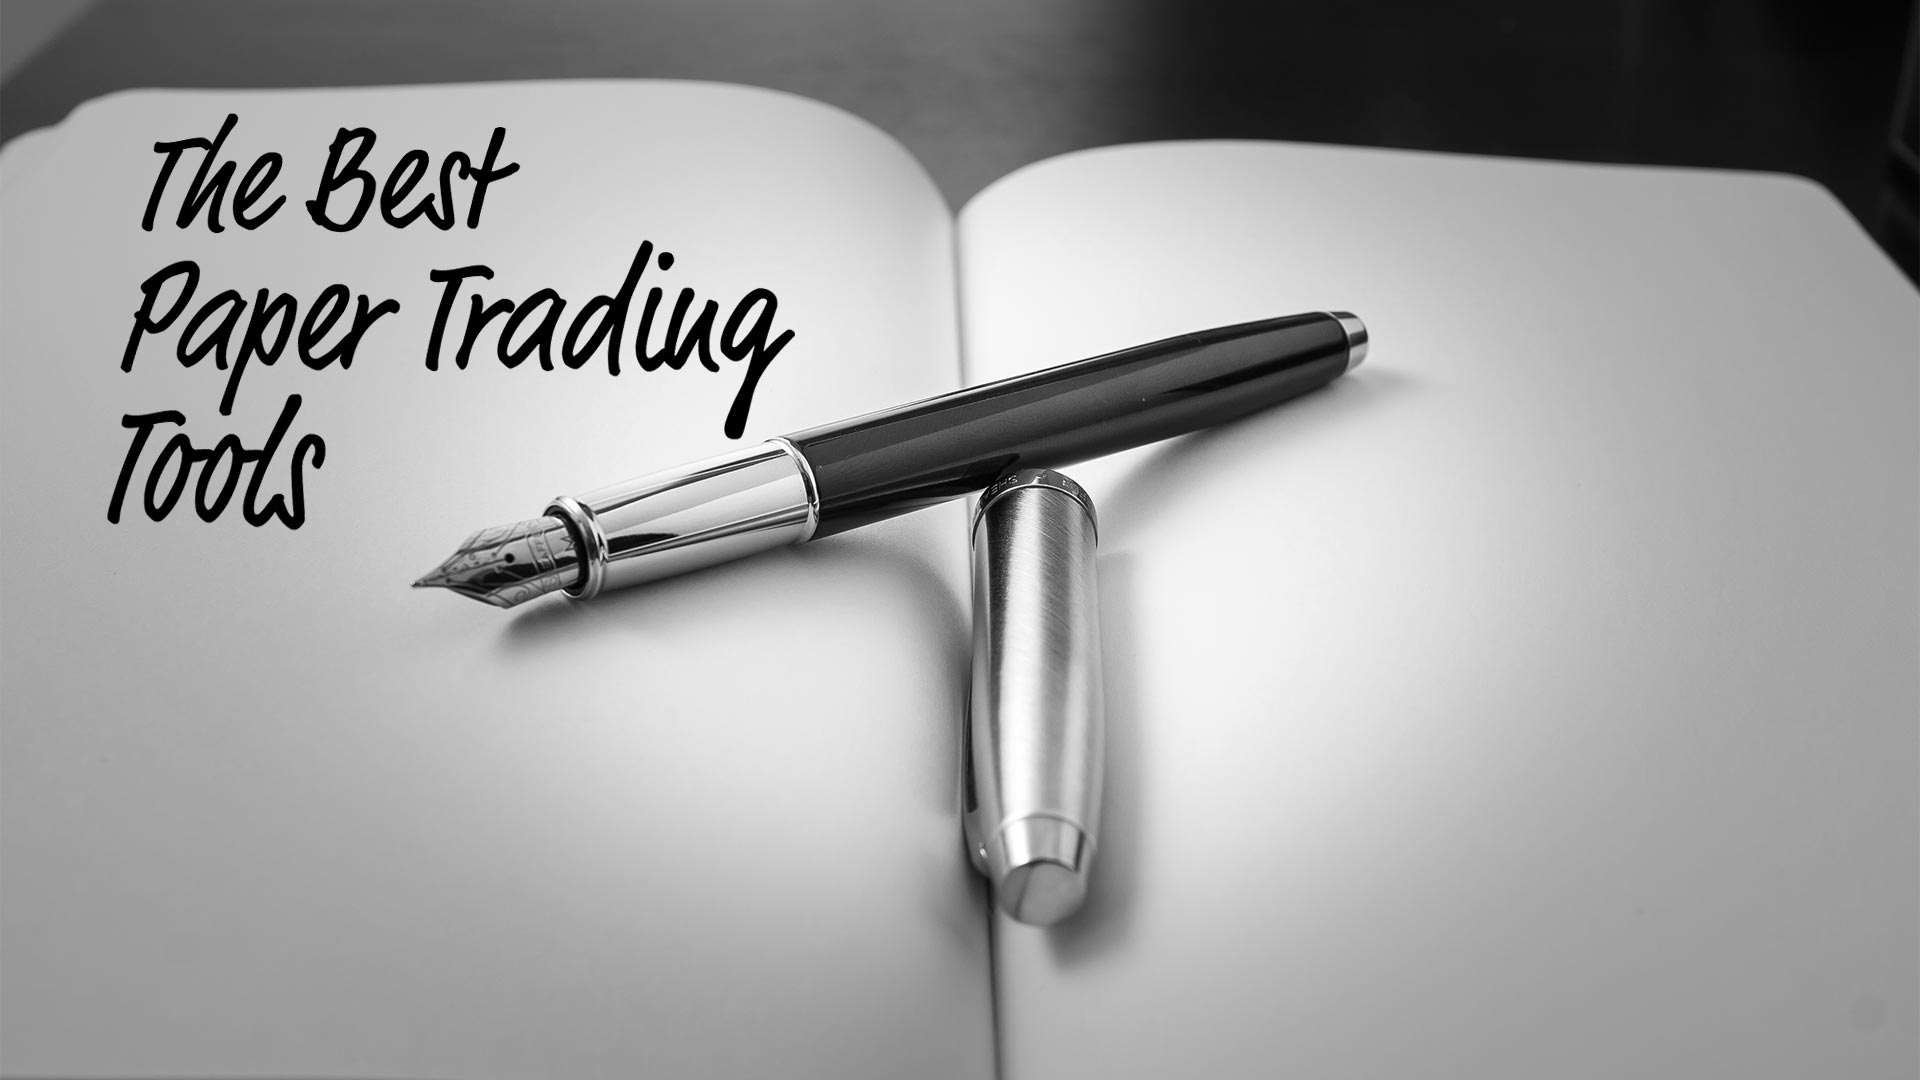 The Best Paper Trading Tools